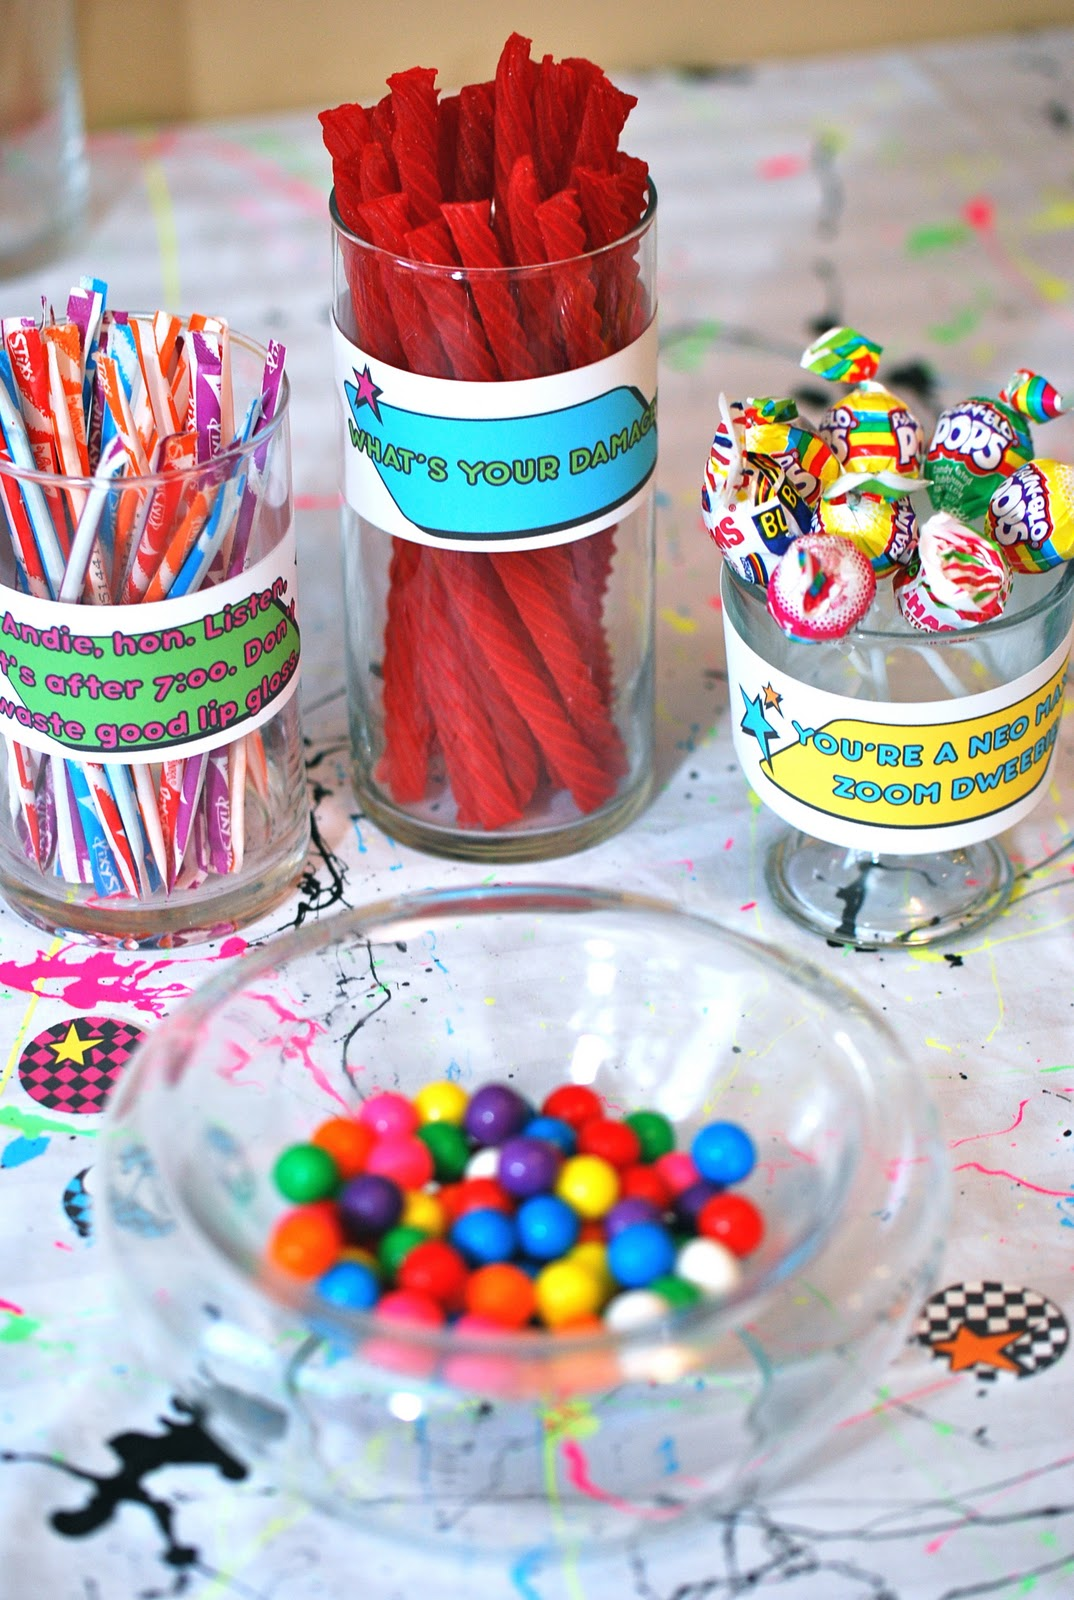 40th Birthday Decorations For Her 40th Birthday Ideas 40th Birthday Party Ideas On A Budget